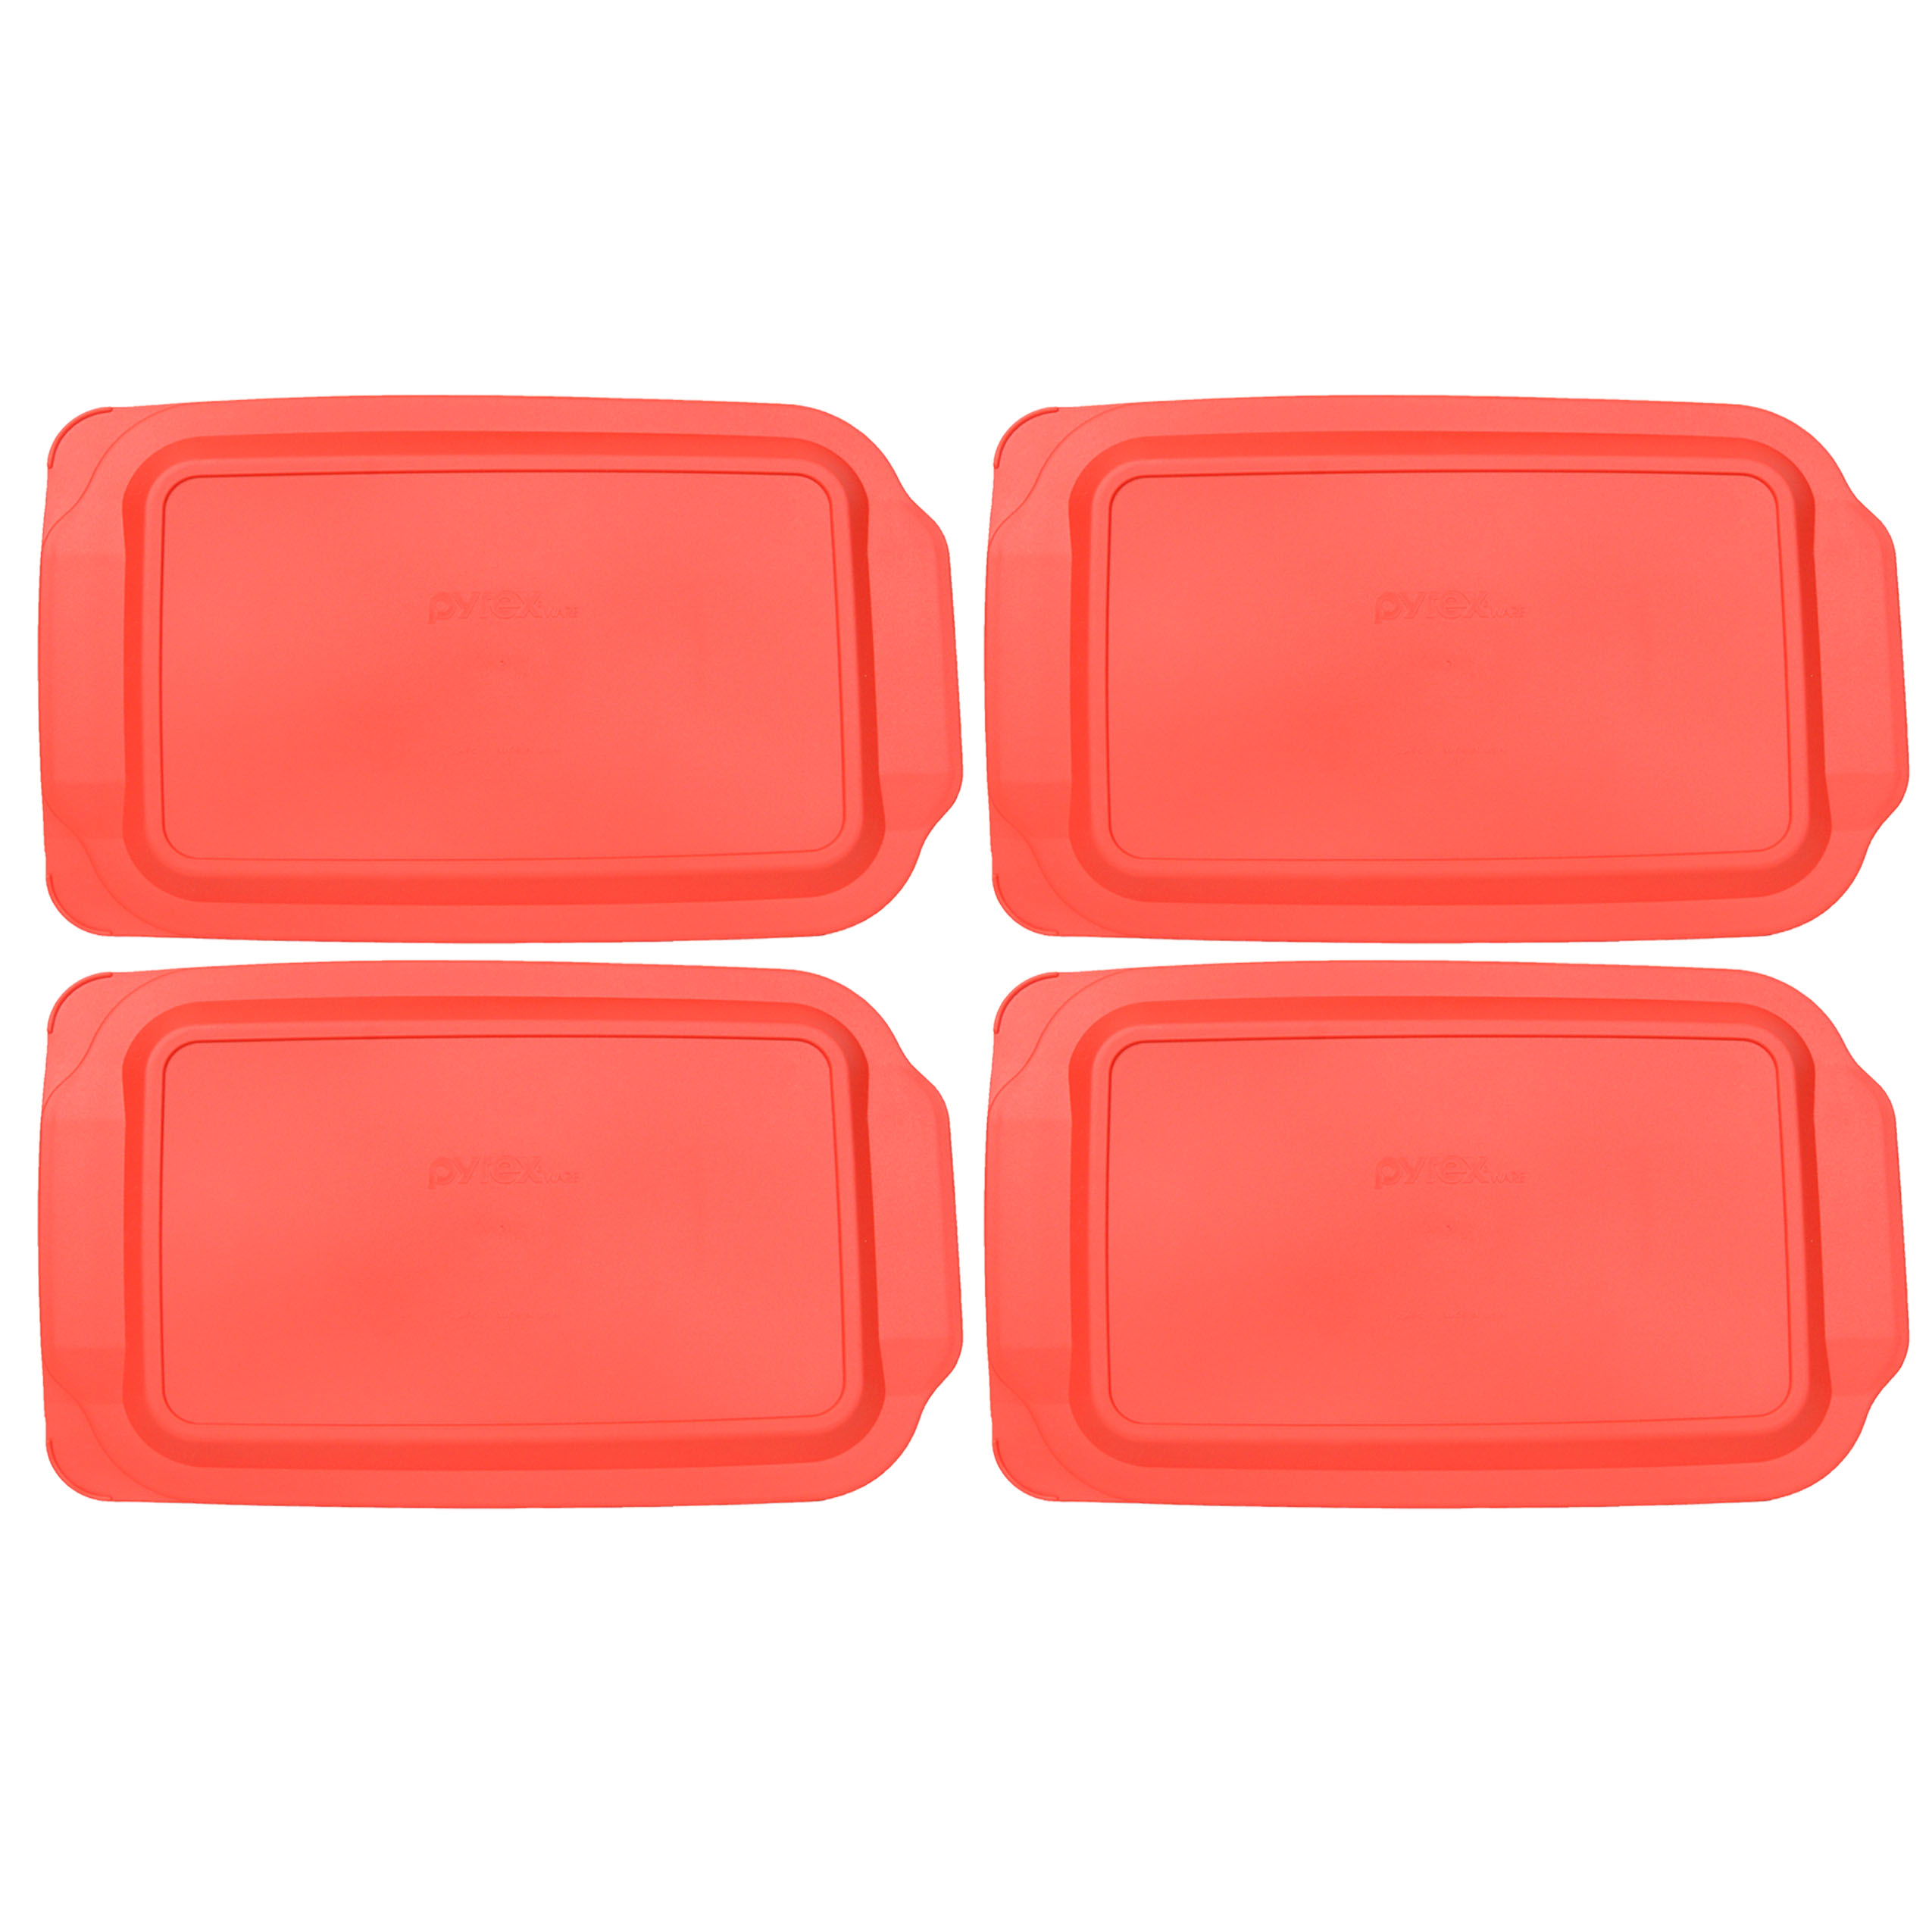 Pyrex Replacement Lid 234-PC 4 Quart Rectangular Red Plastic Cover 4-Pack